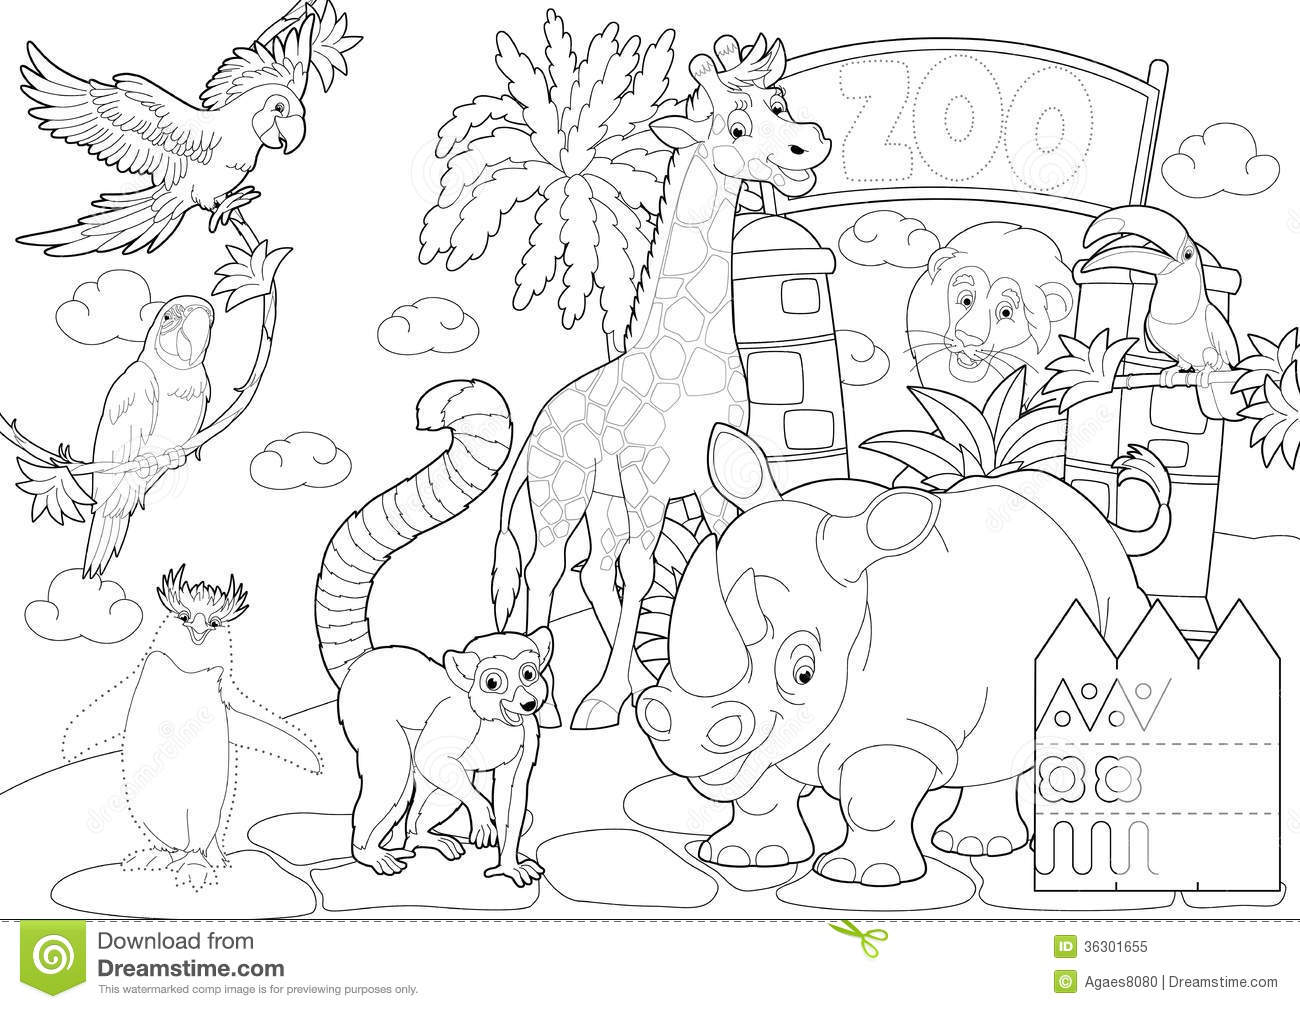 coloring page the zoo illustration for the children royalty - Royalty Free Coloring Pages